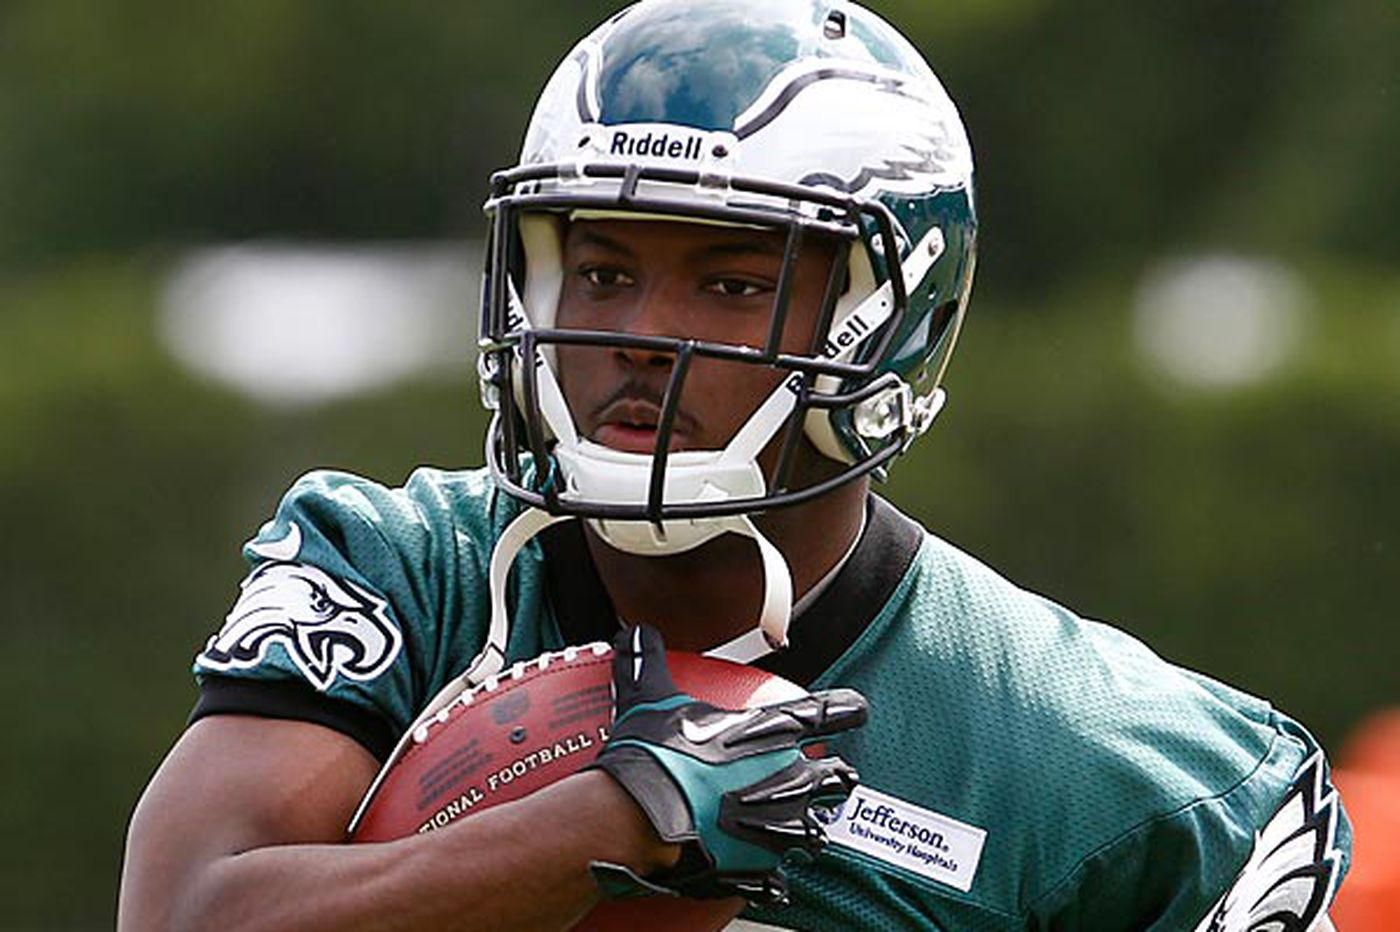 Woman sues LeSean McCoy after alleged incident on bus